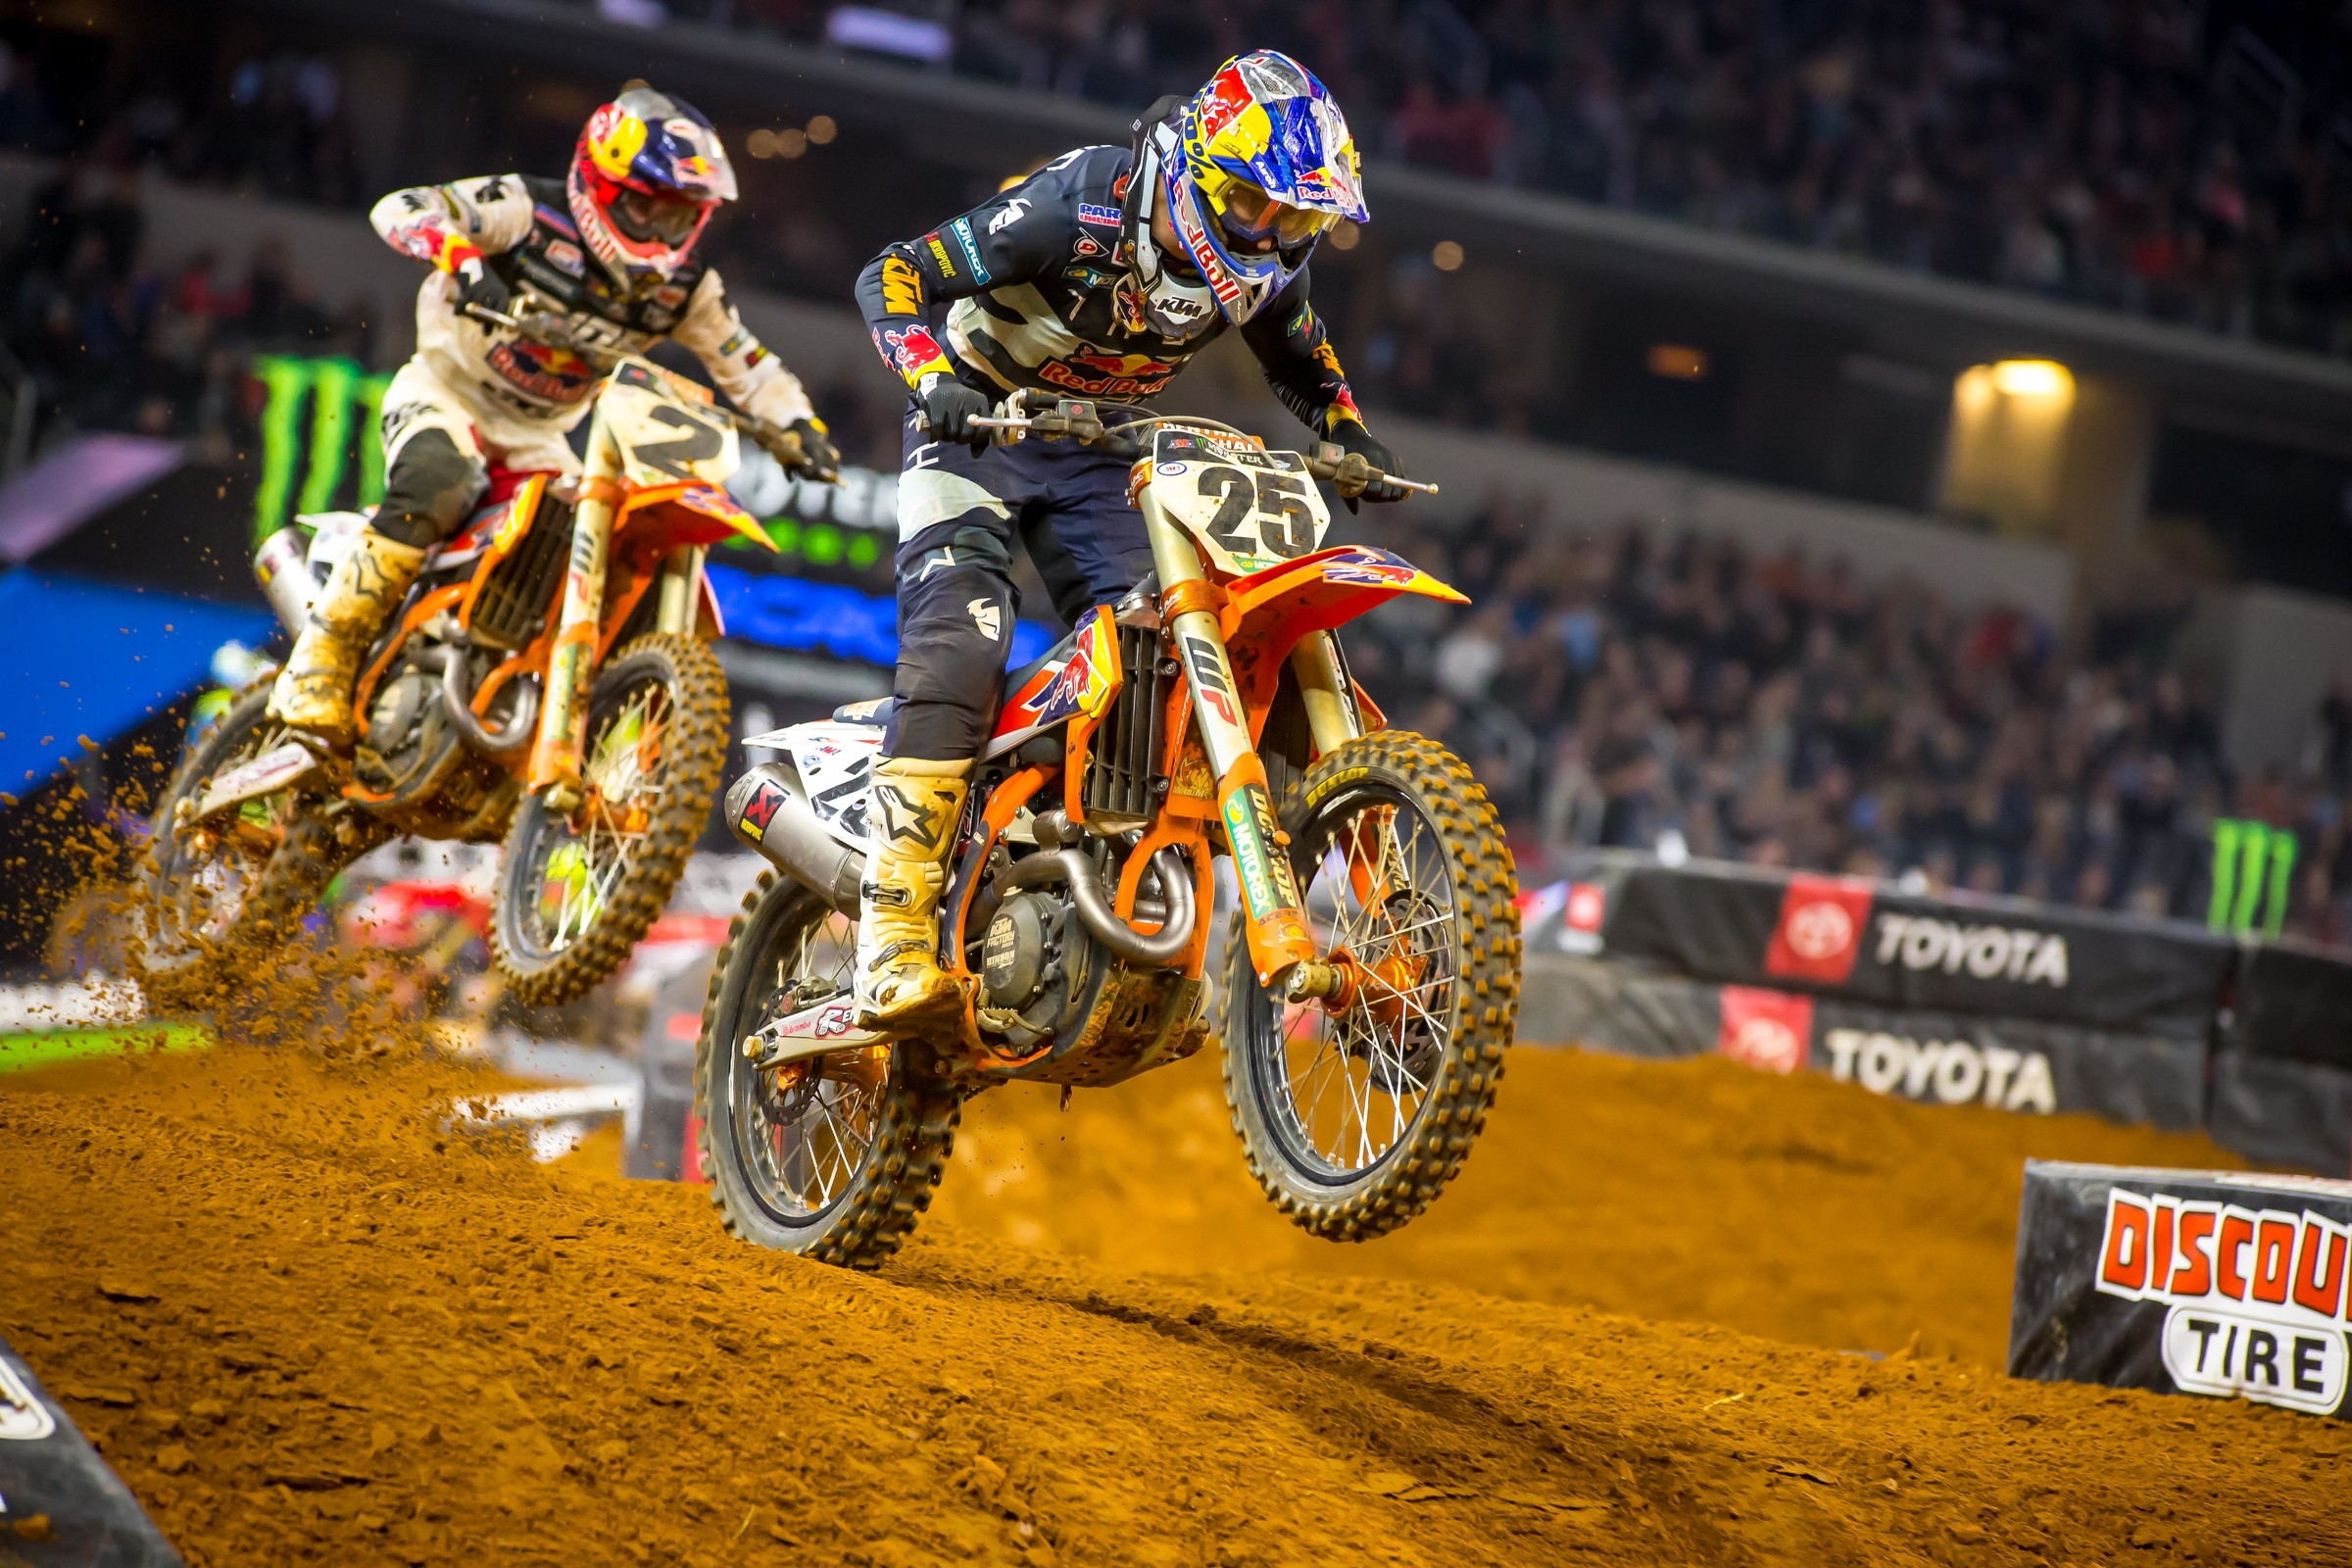 Late in the race, Webb was able to get his teammate Musquin for second, while both kept Roczen in sight.